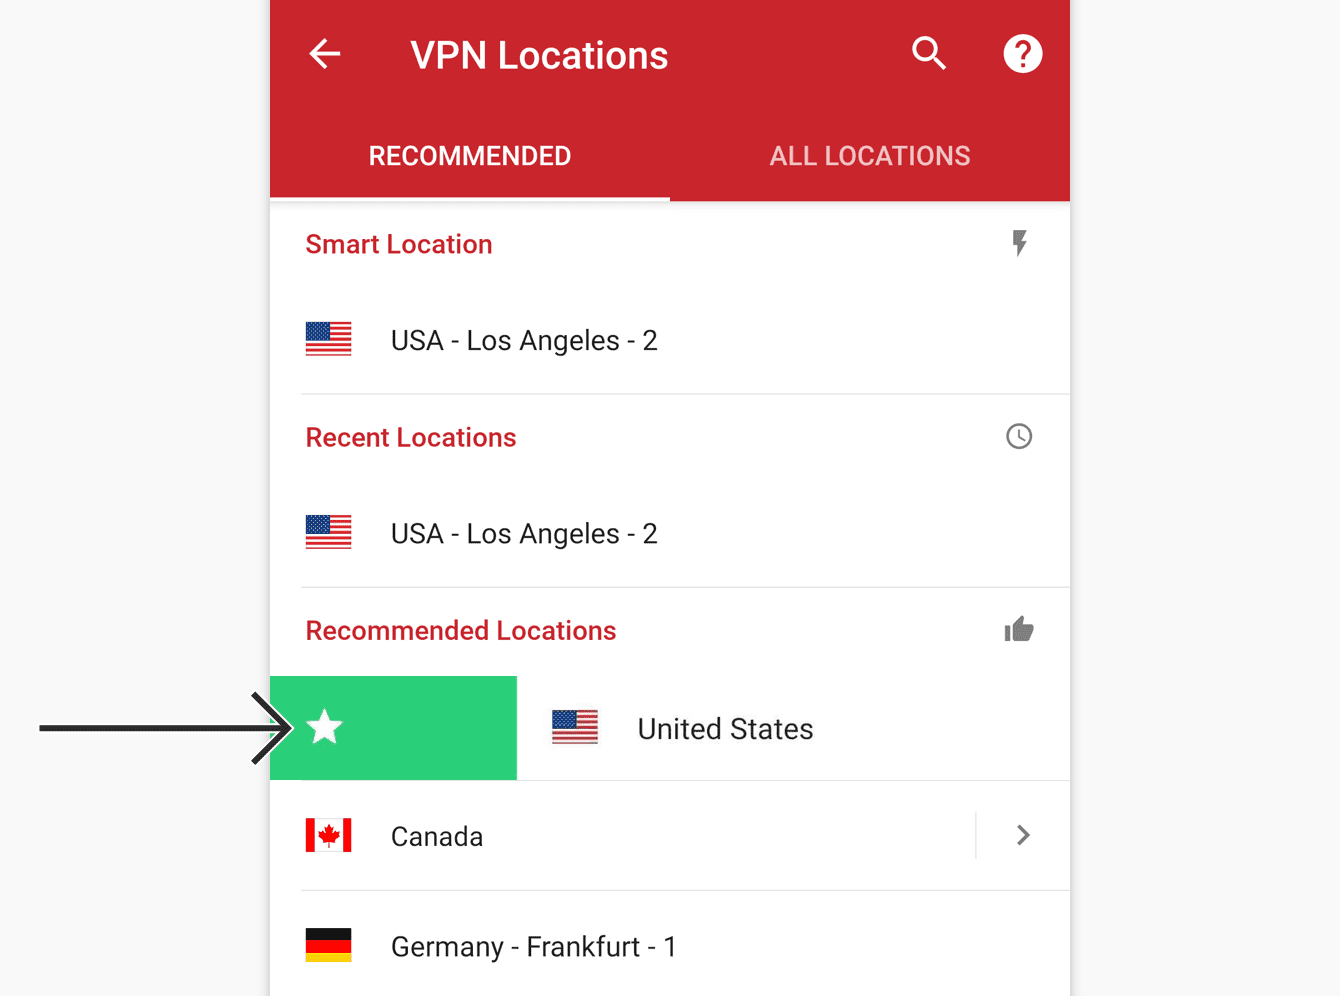 Swipe right on the location to add it to your Favorites tab.